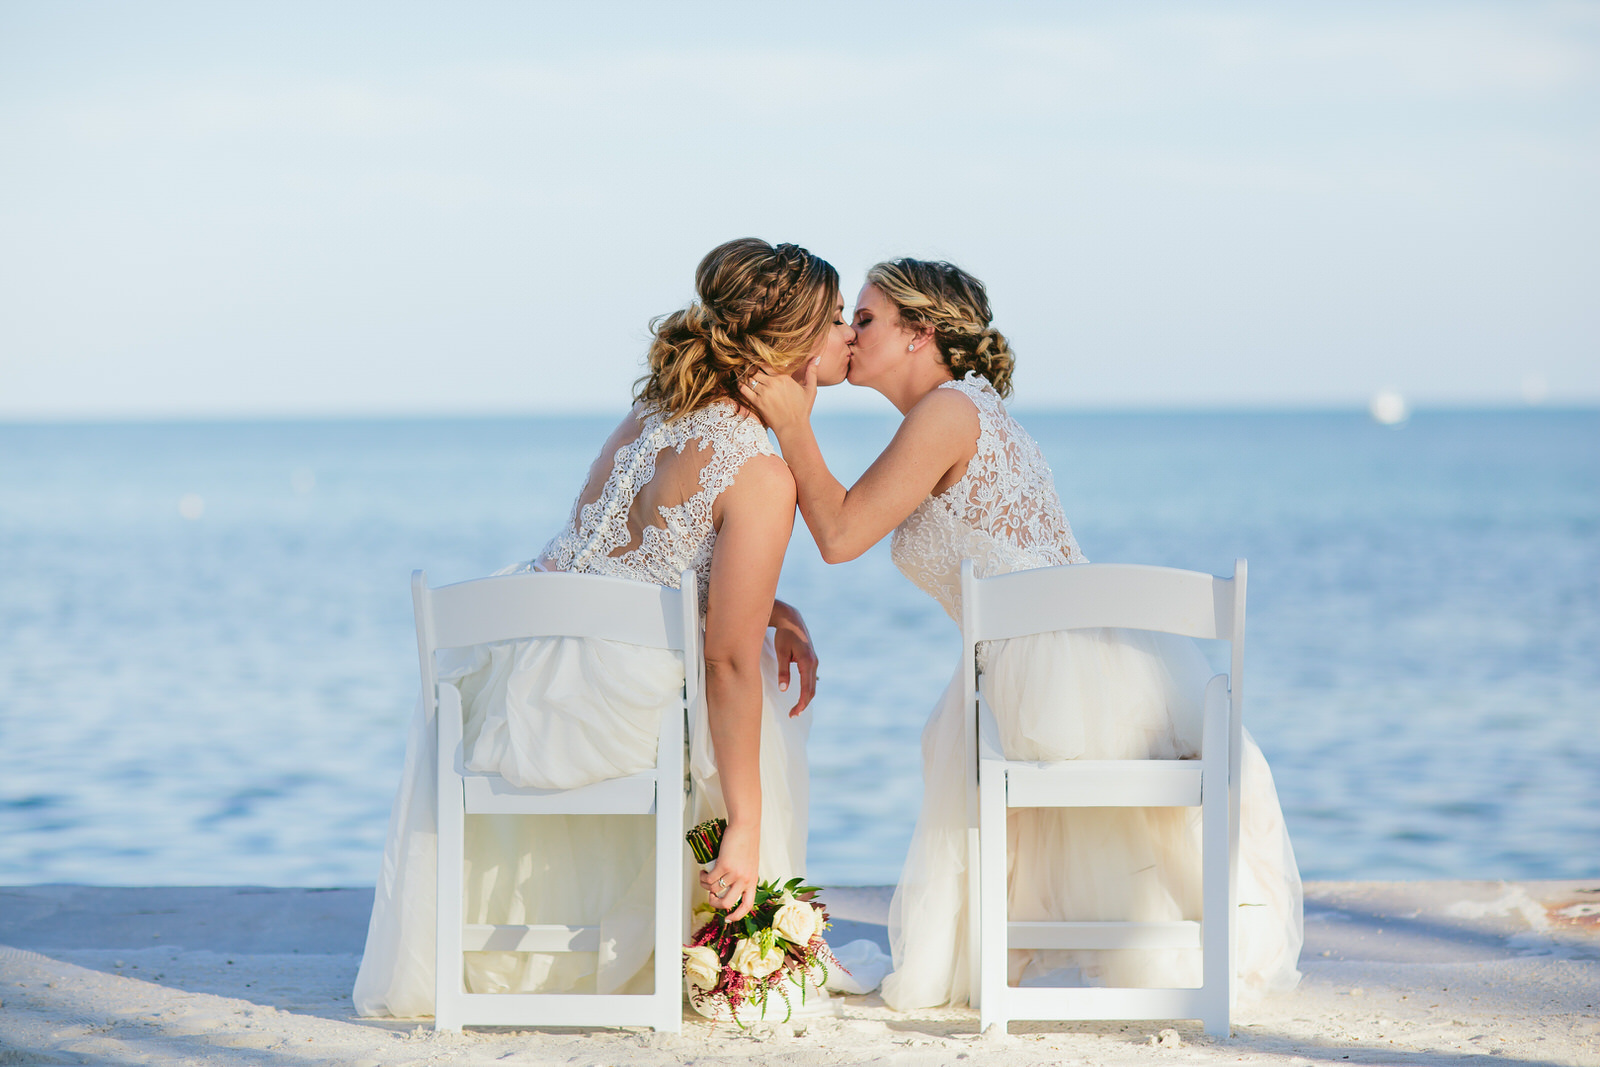 brides_sitting_kissing_sea_destination_lgbtq_weddings.jpg